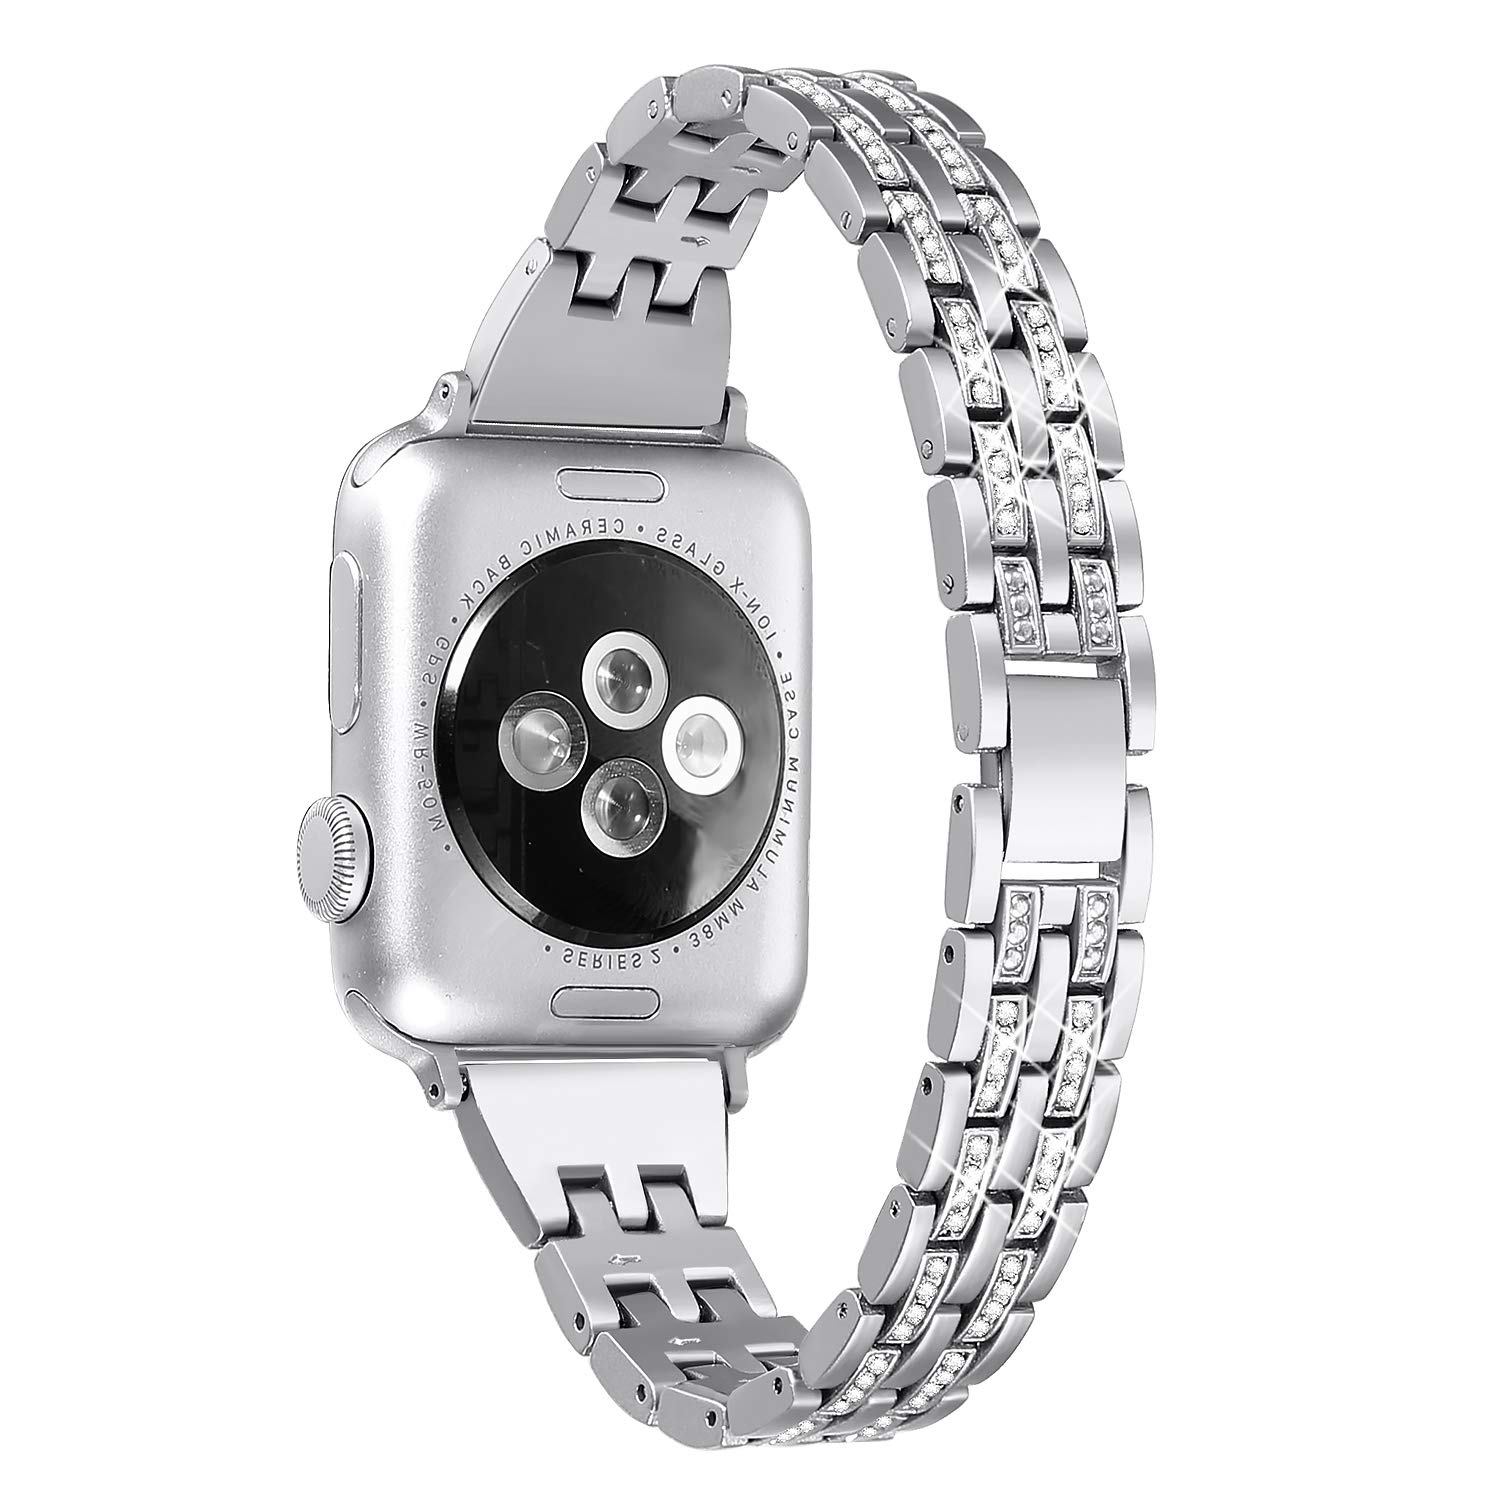 Secbolt Bling Bands Compatible Apple Watch Band 38mm 40mm iWatch Series 3, Series 2, Series 1, Diamond Rhinestone Metal Jewelry Wristband Strap, Silver by Secbolt